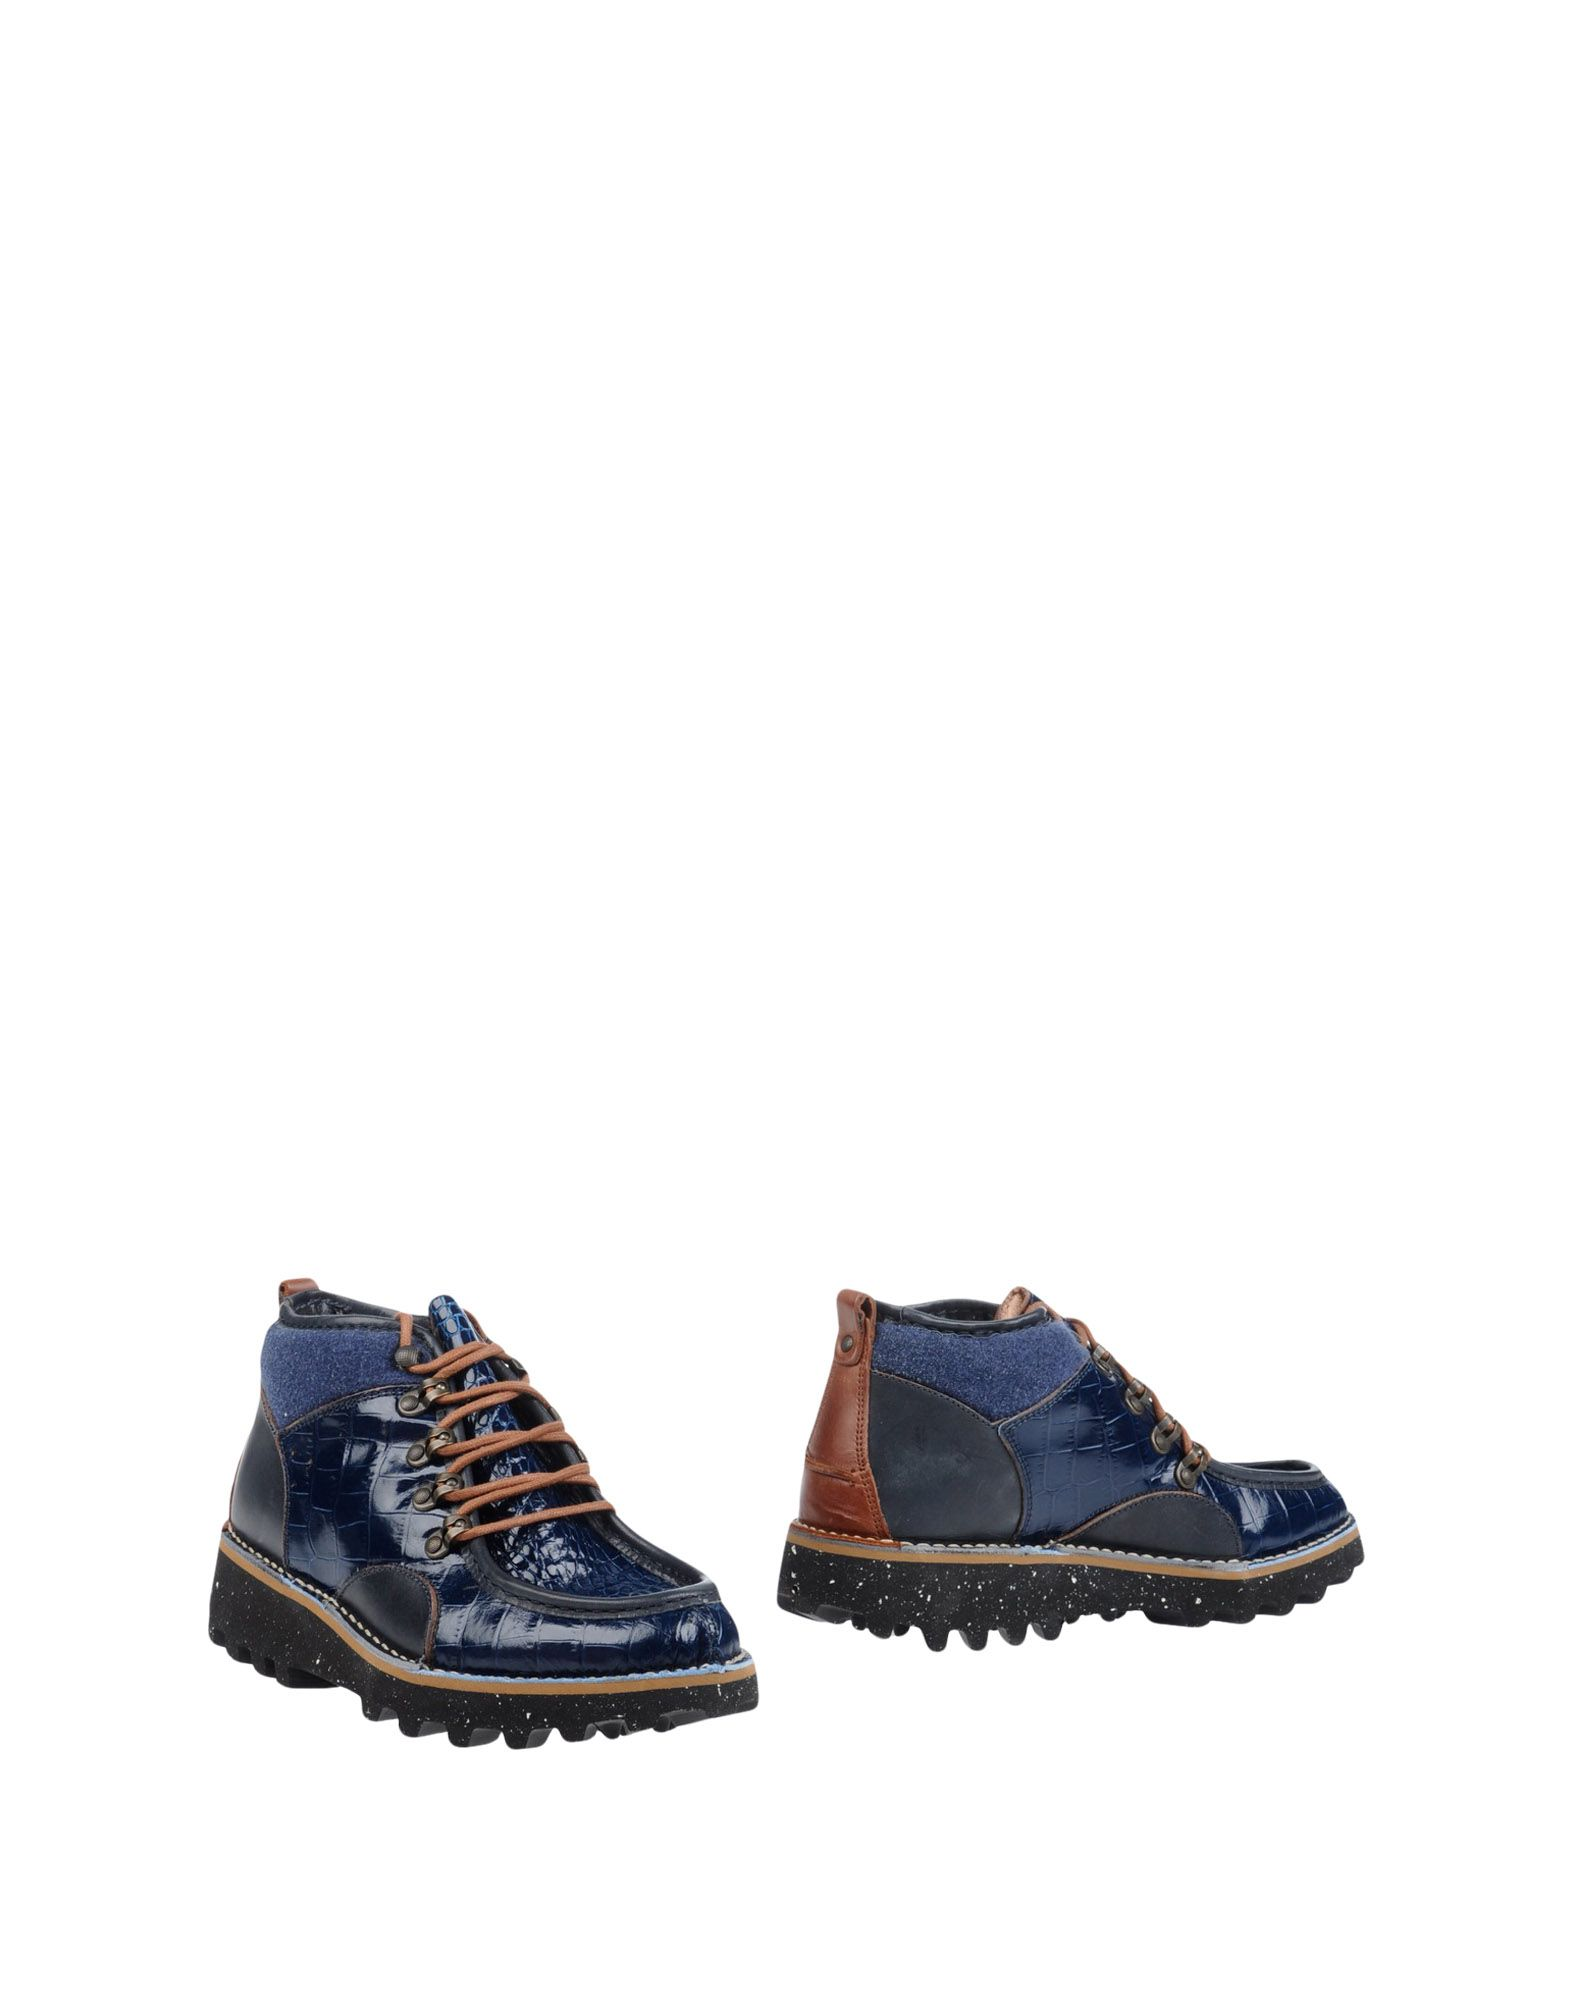 BARLEYCORN Boots in Dark Blue